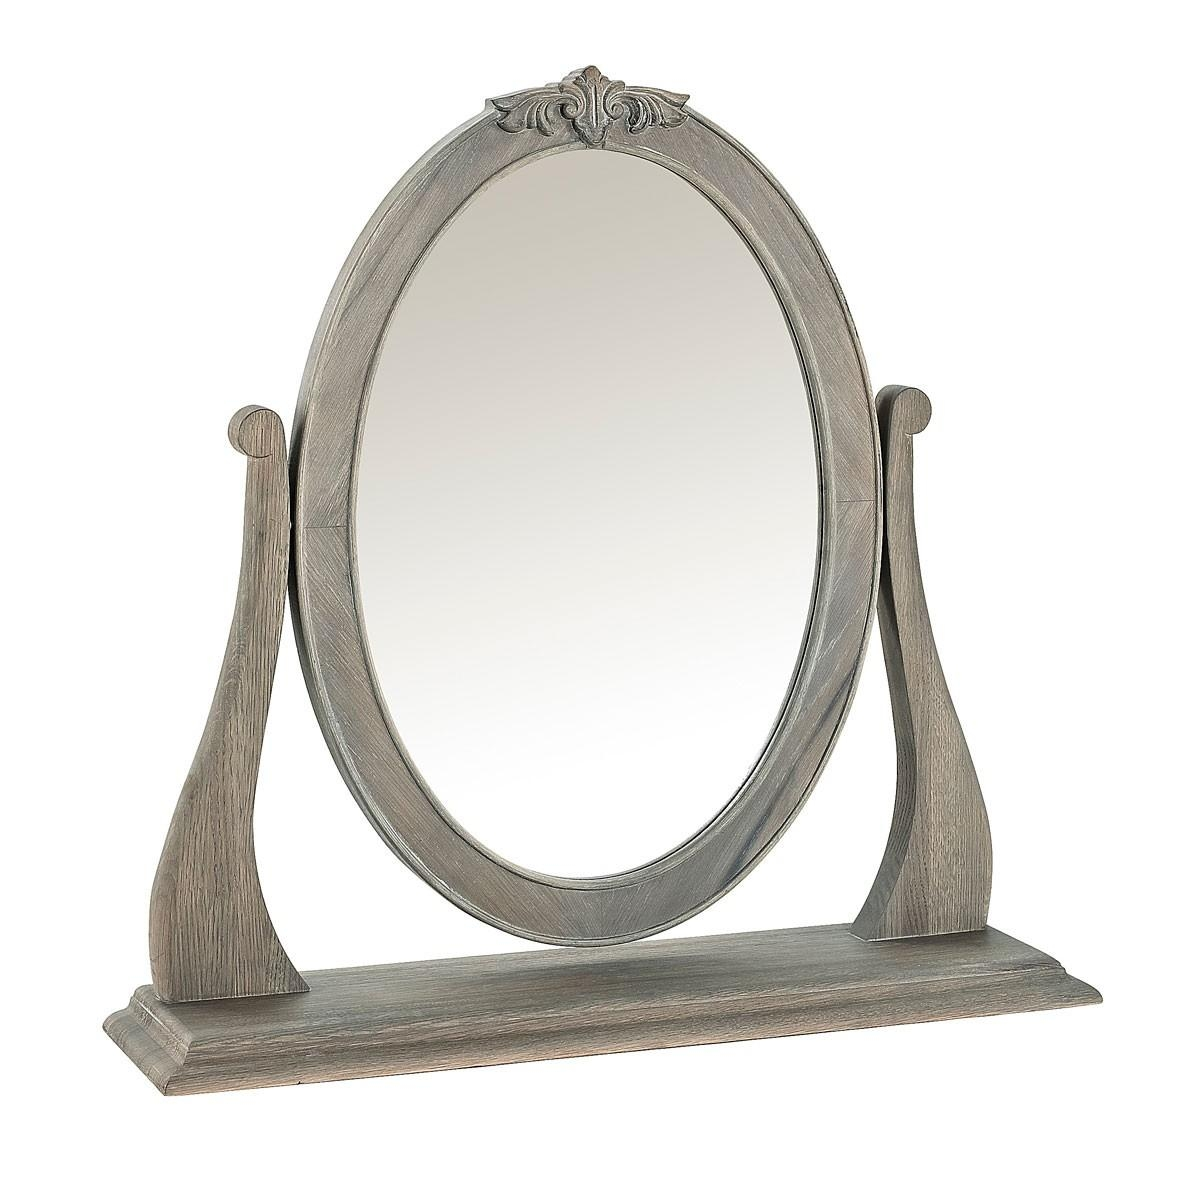 Camille French Style Dressing Table Mirror, Washed Oak | French For Dressing Table Mirrors (View 12 of 20)